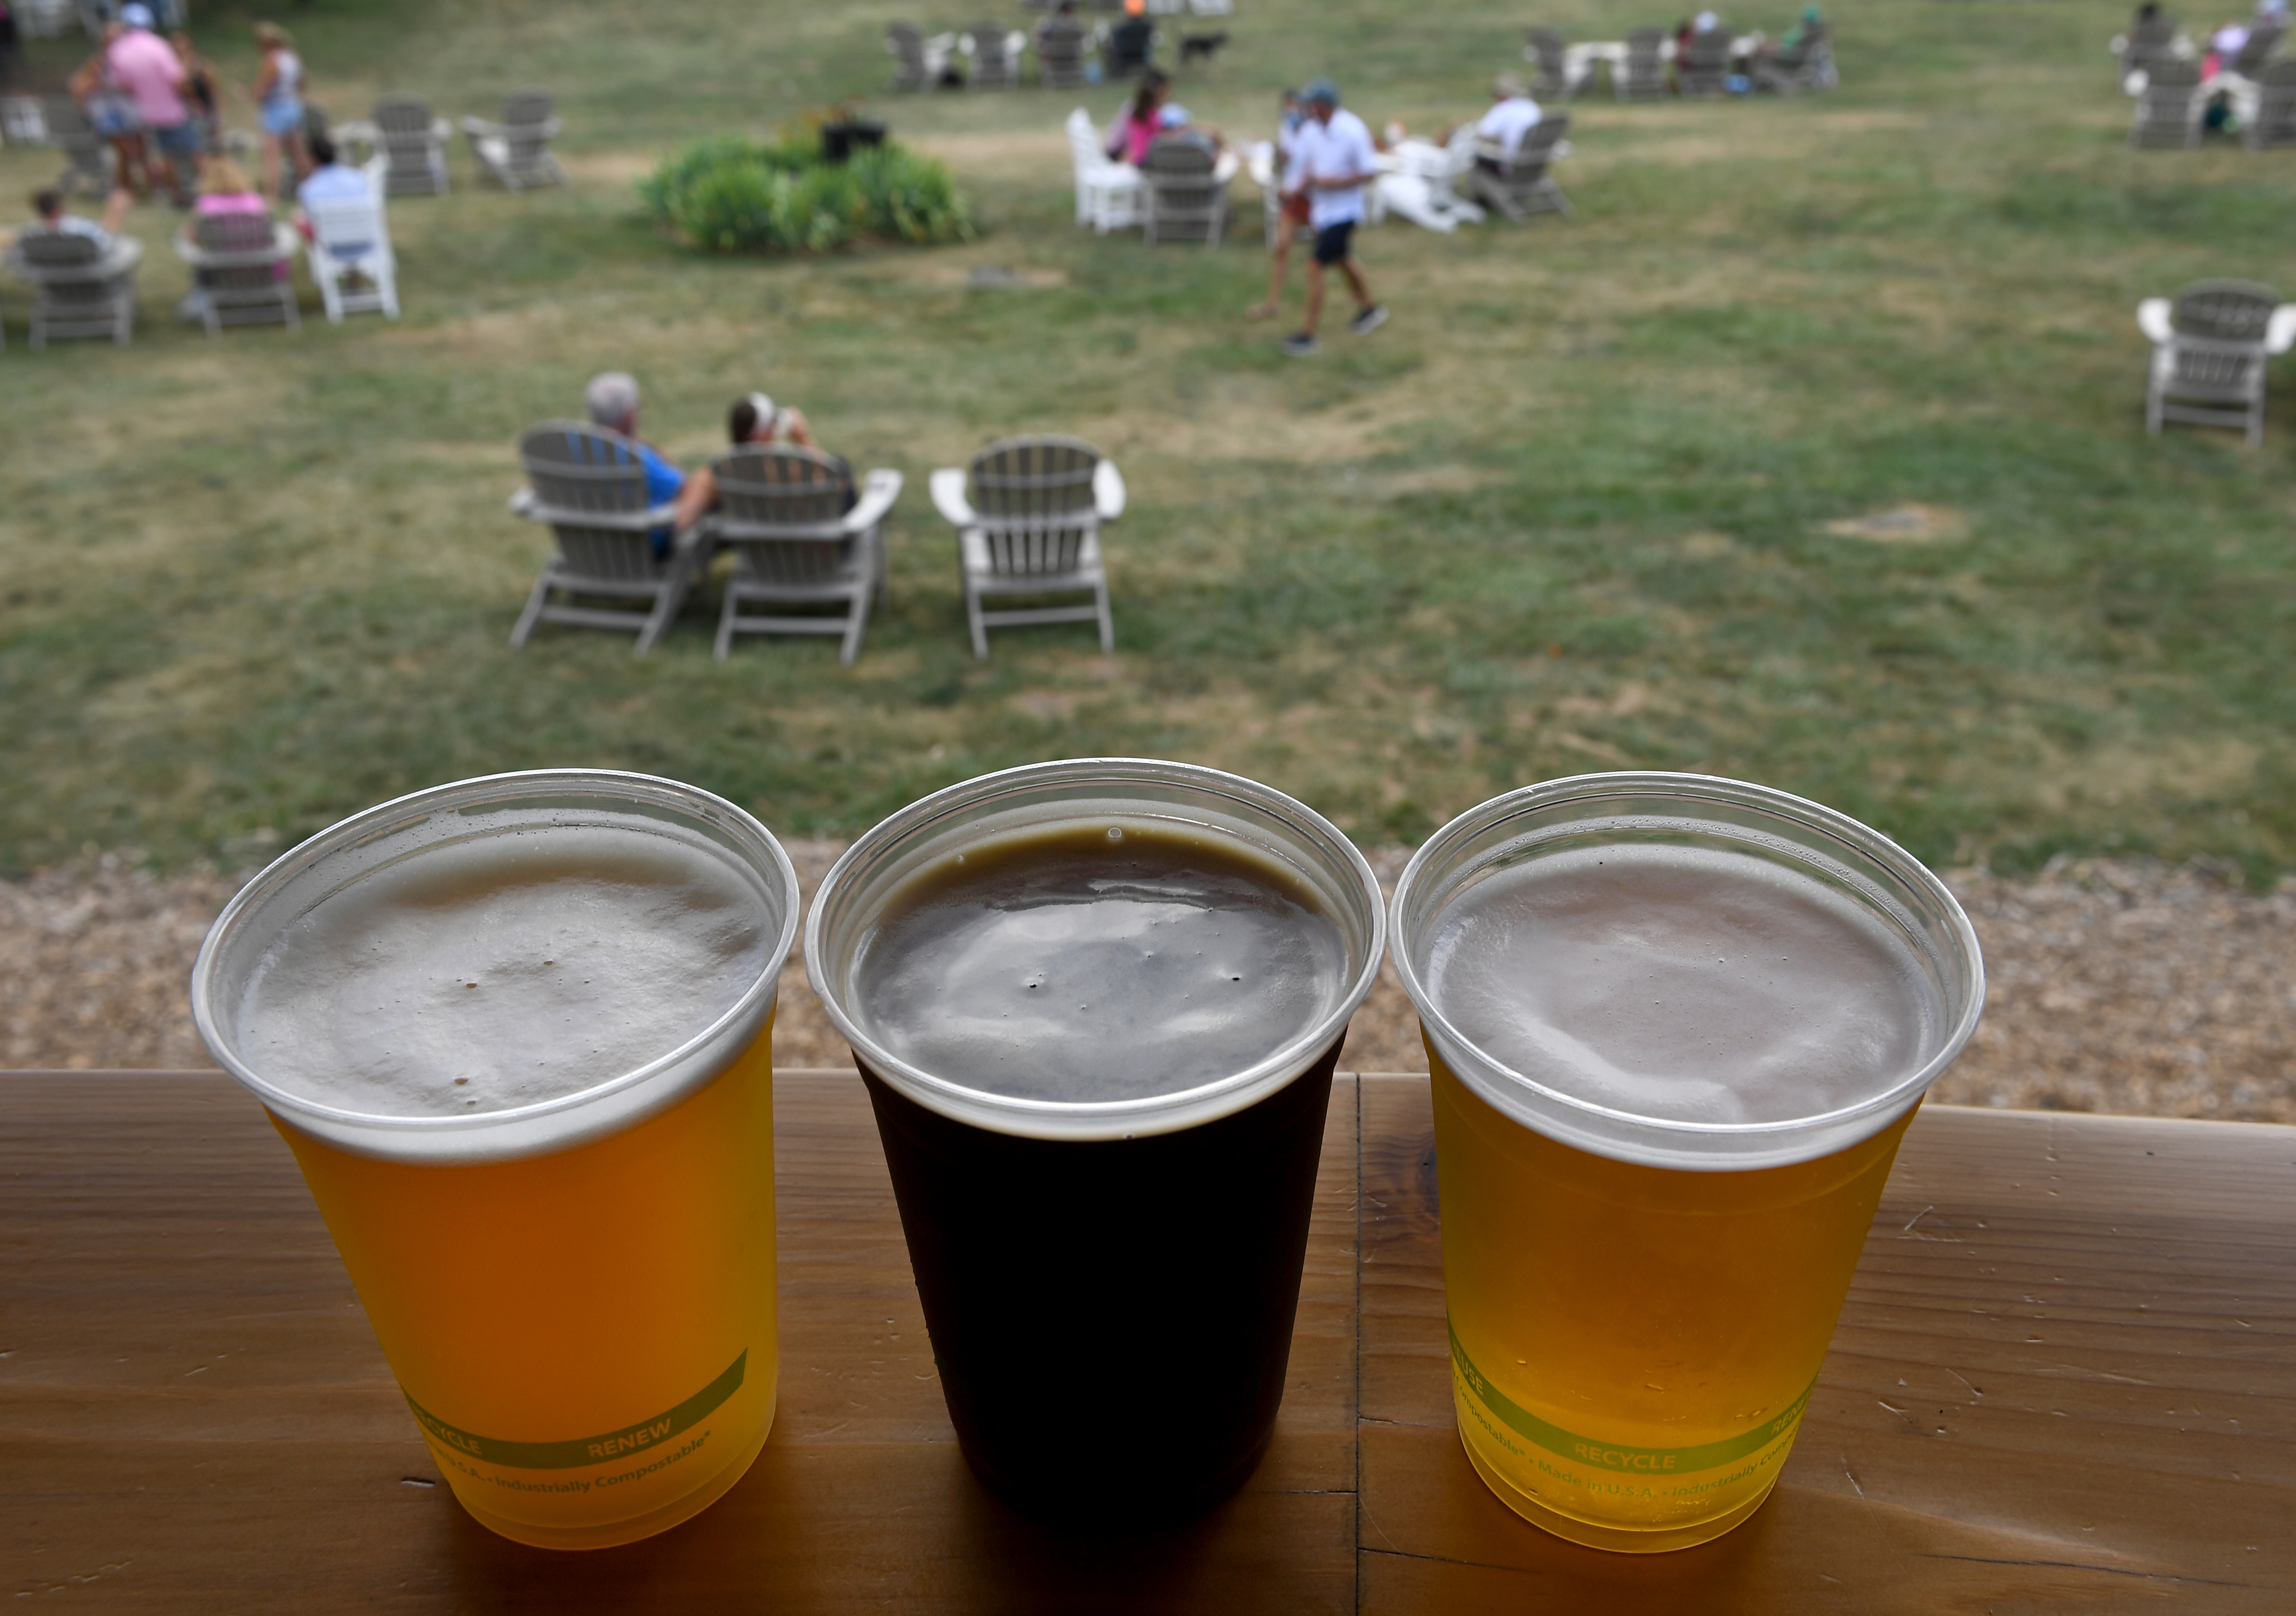 Bear Chase Brewing Company offers room to spread out and enjoy beer, wine and cider during the coronavirus pandemic